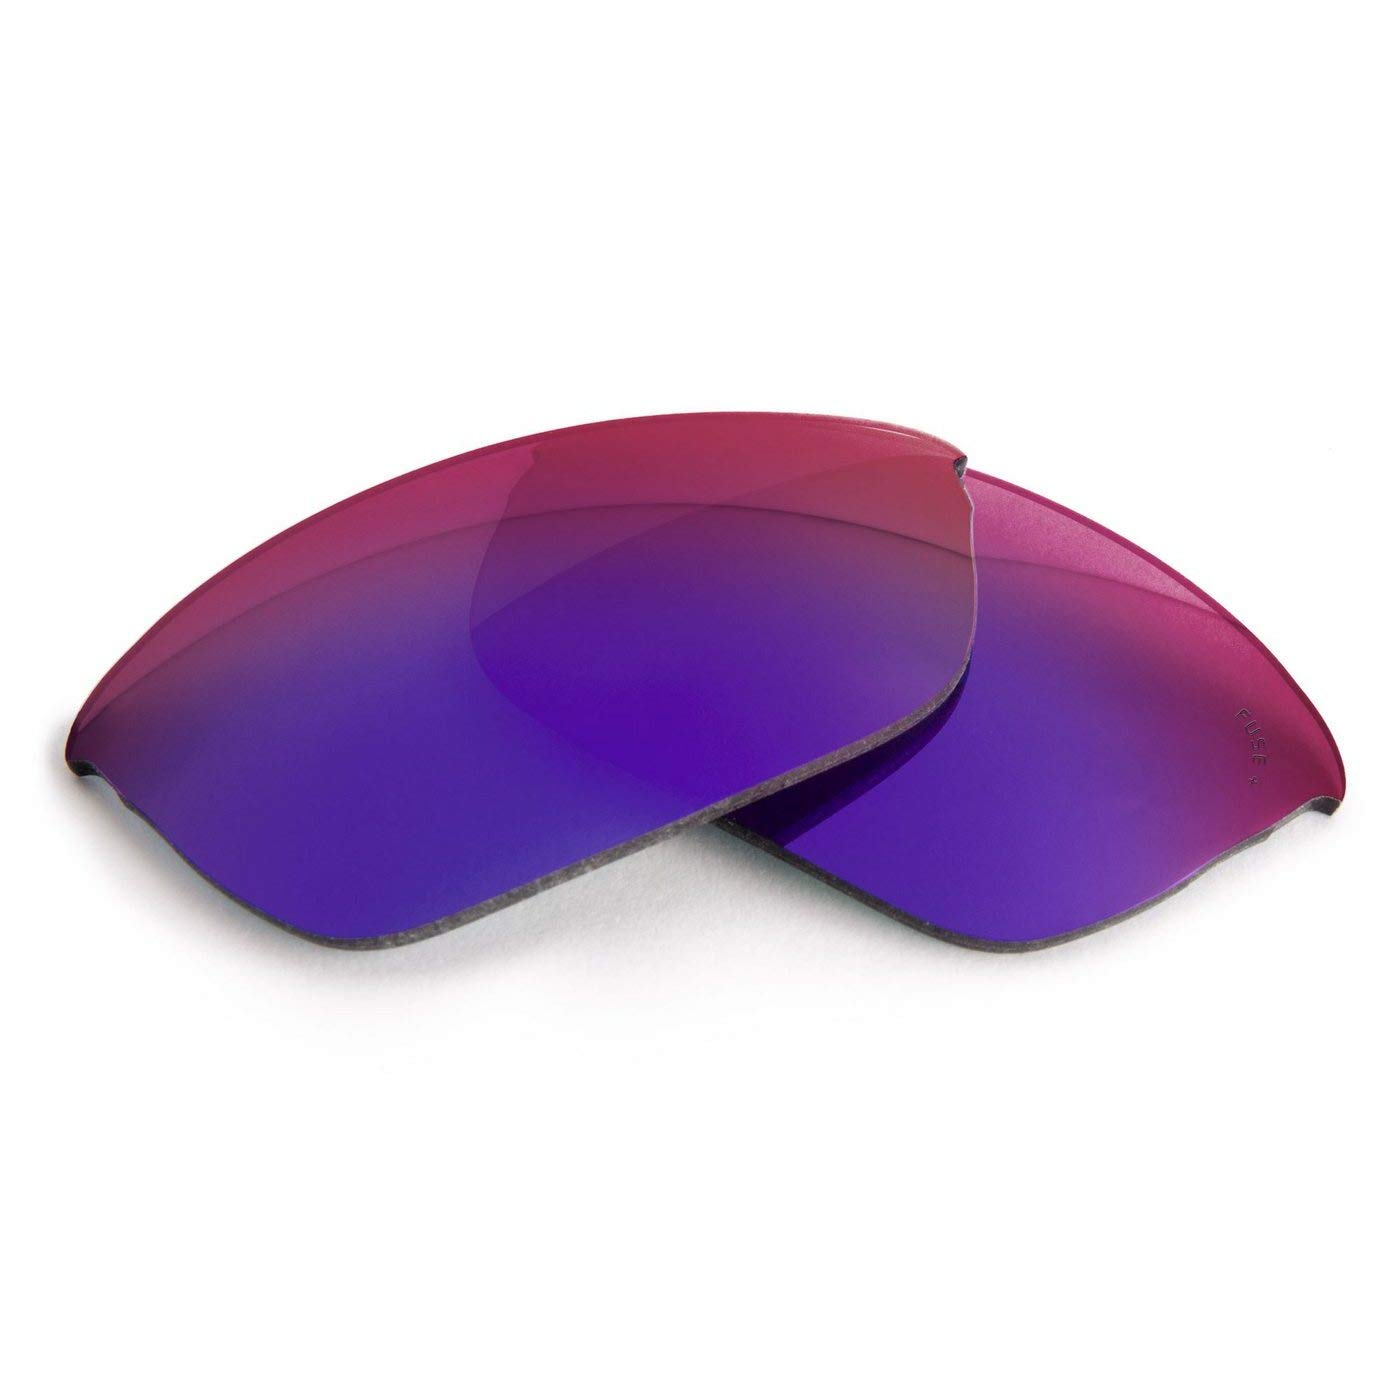 a28eb084d2 Amazon.com  Fuse Lenses for Oakley Flak 2.0 (Asian Fit) 009271  Clothing